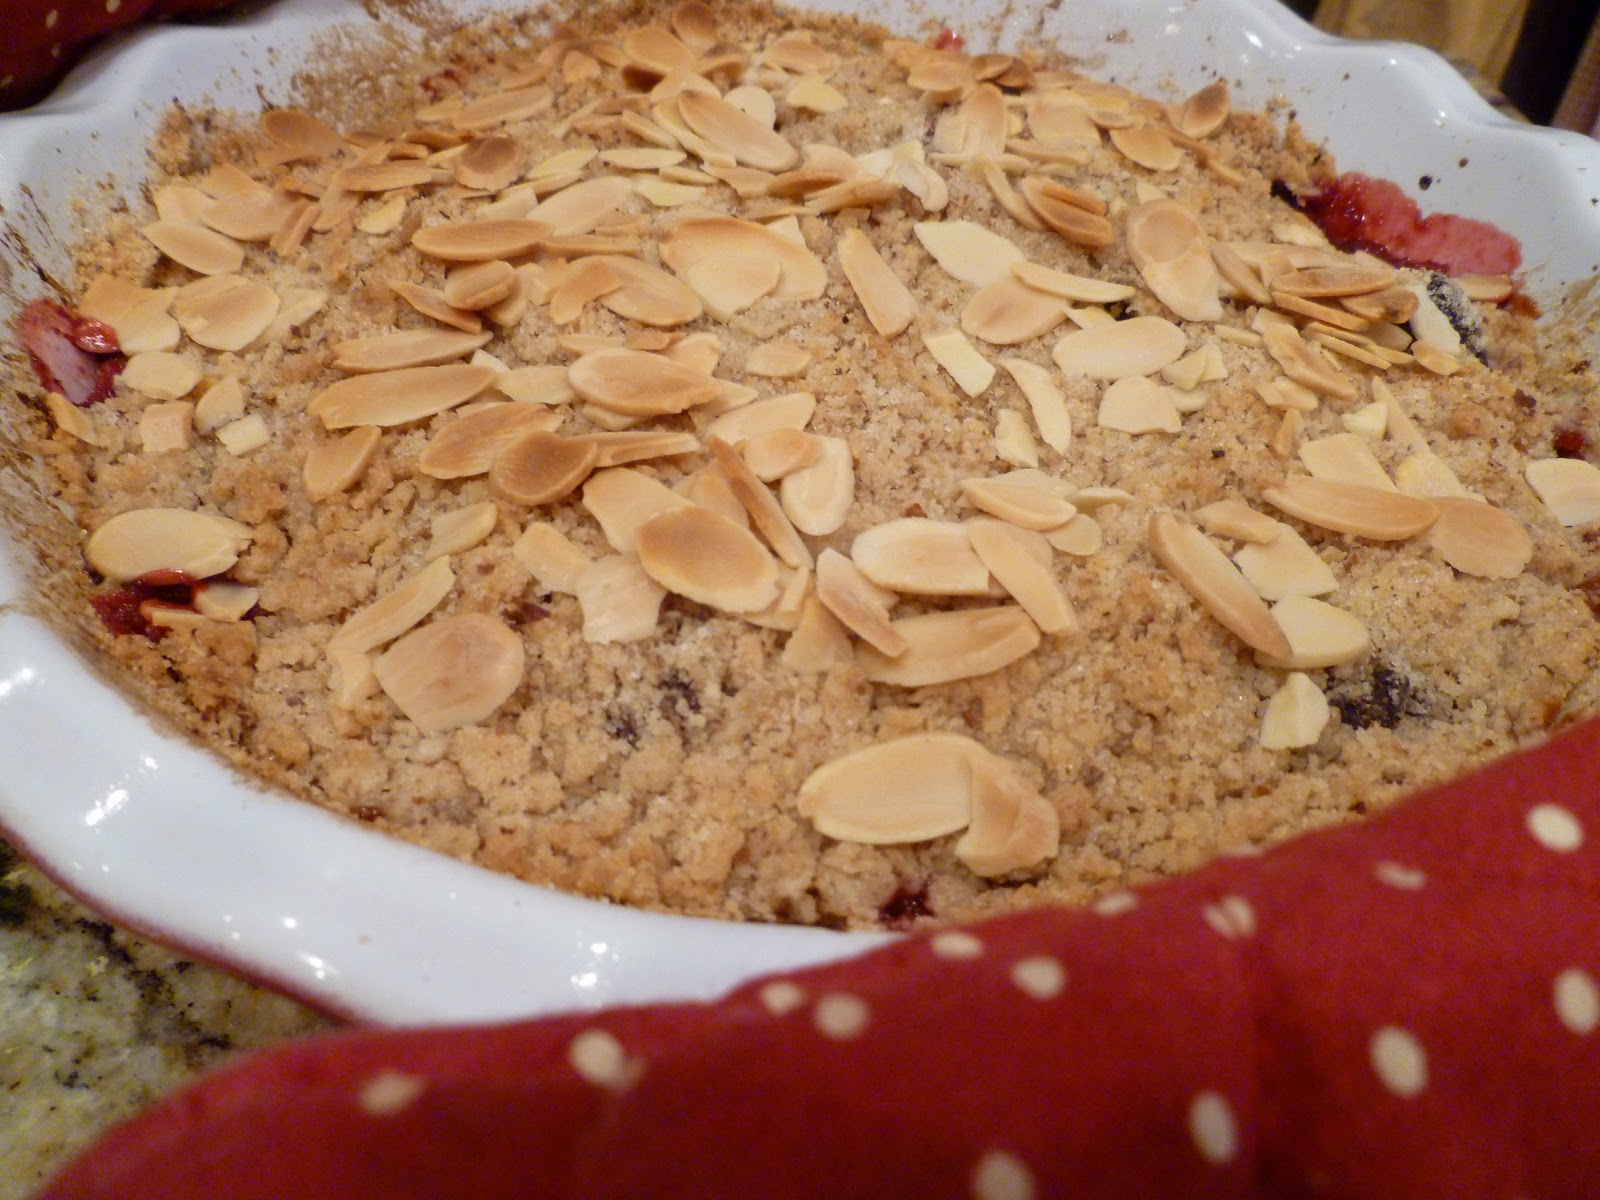 The Fanciful Fig: Peach and Blackberry Crumble